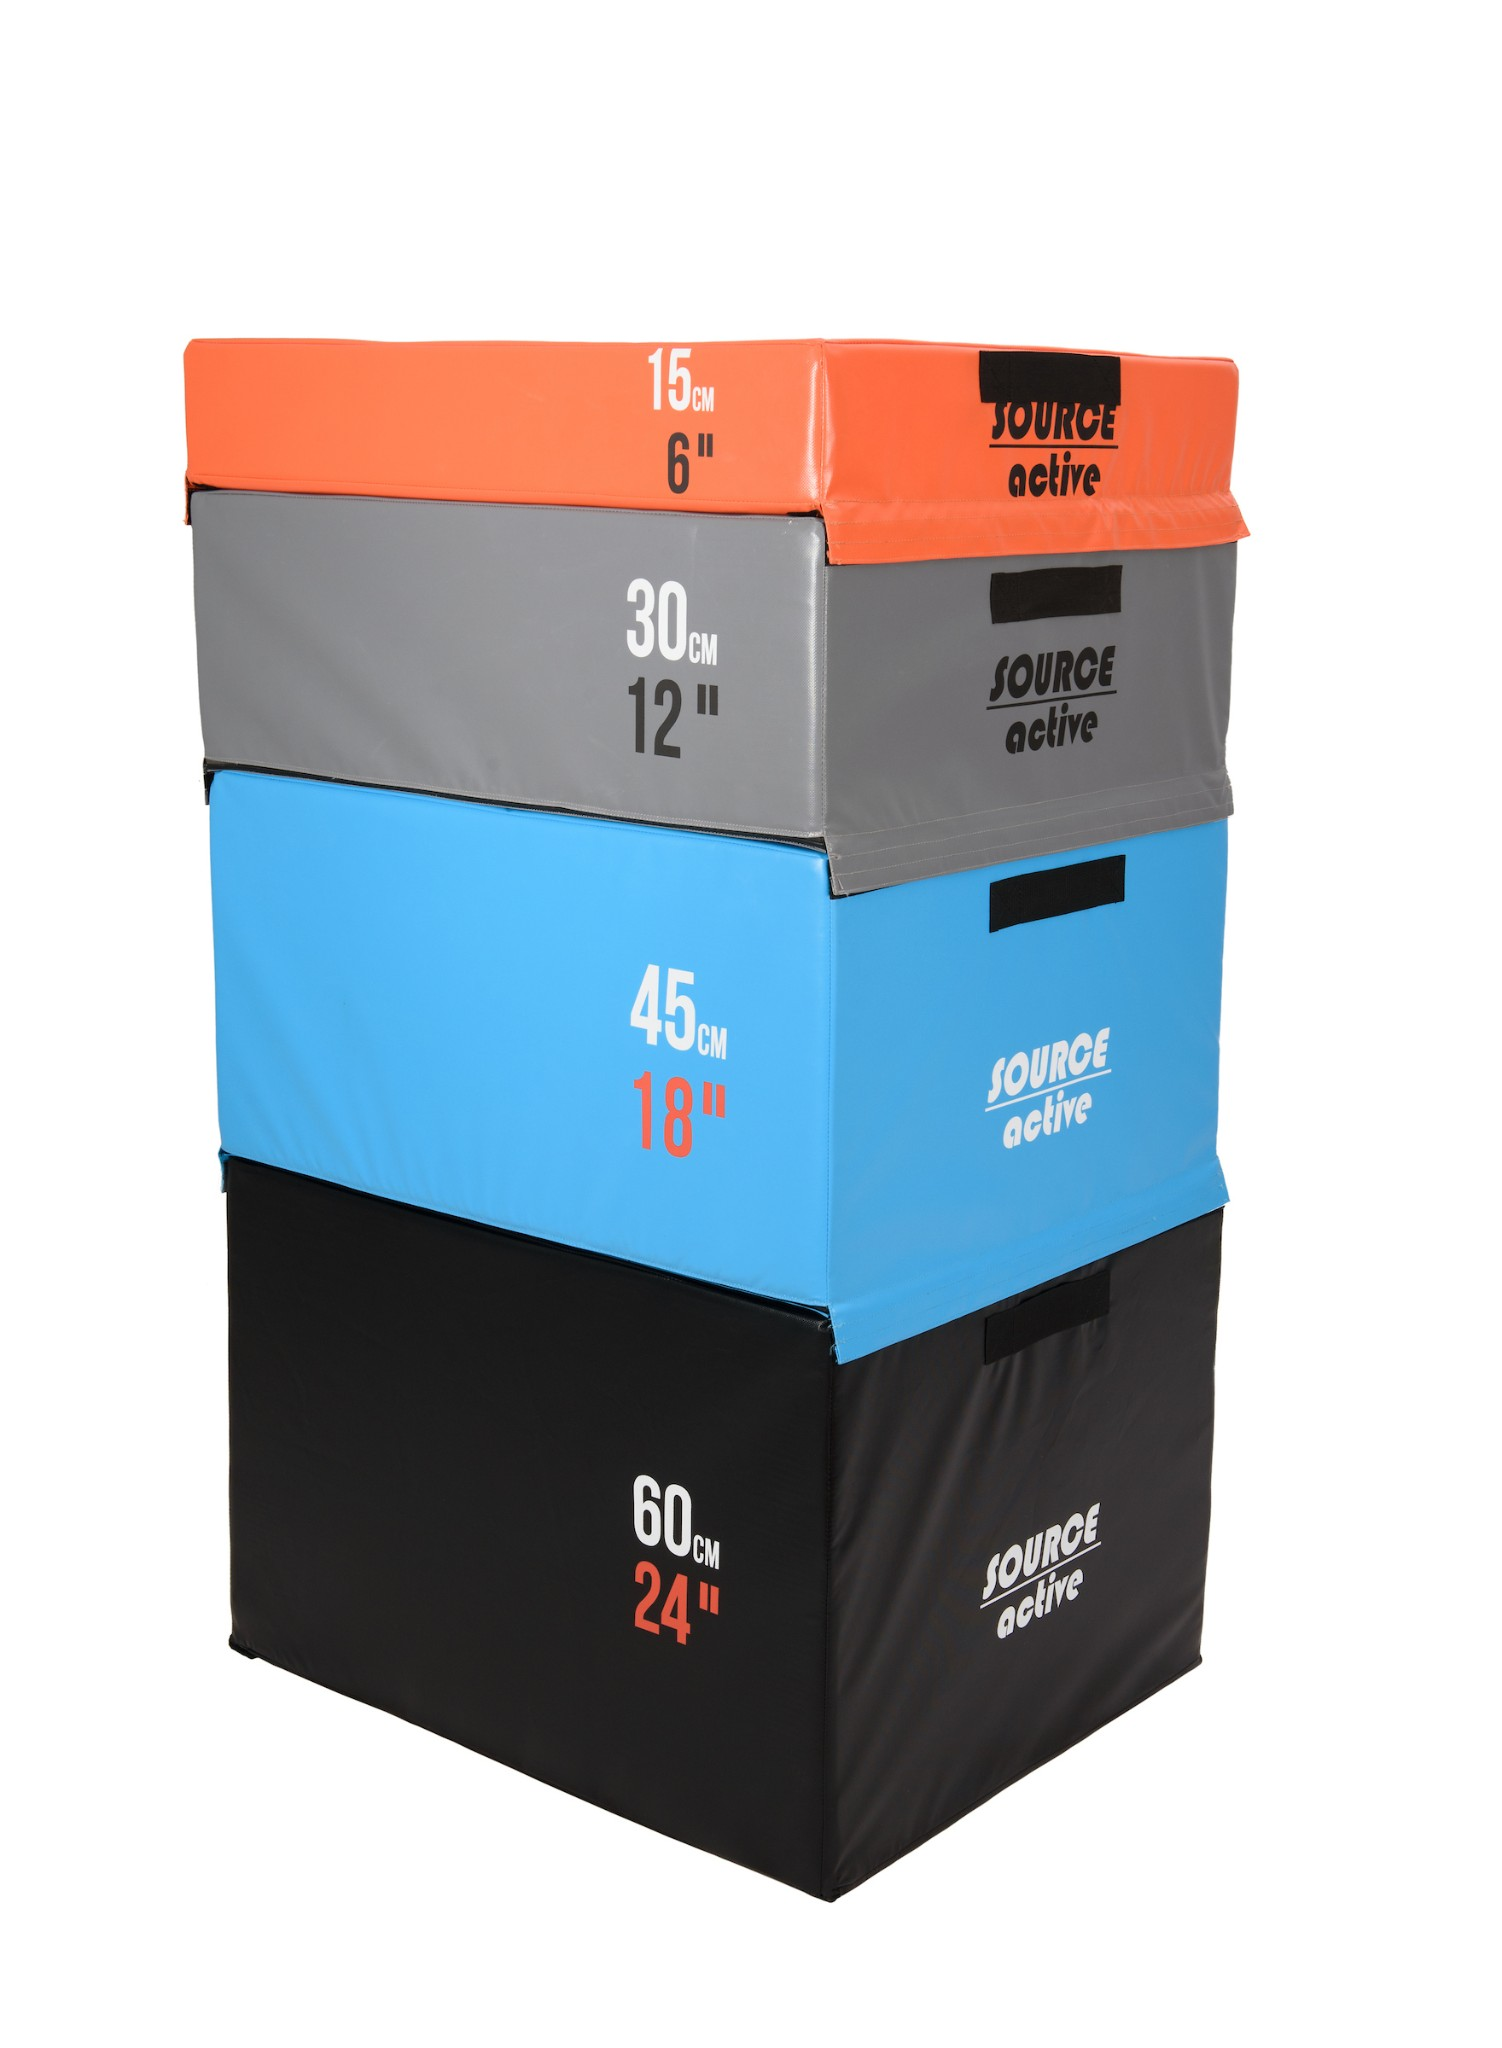 SOURCE ACTIVE SOFT PLYOMETRIC JUMP BOXES